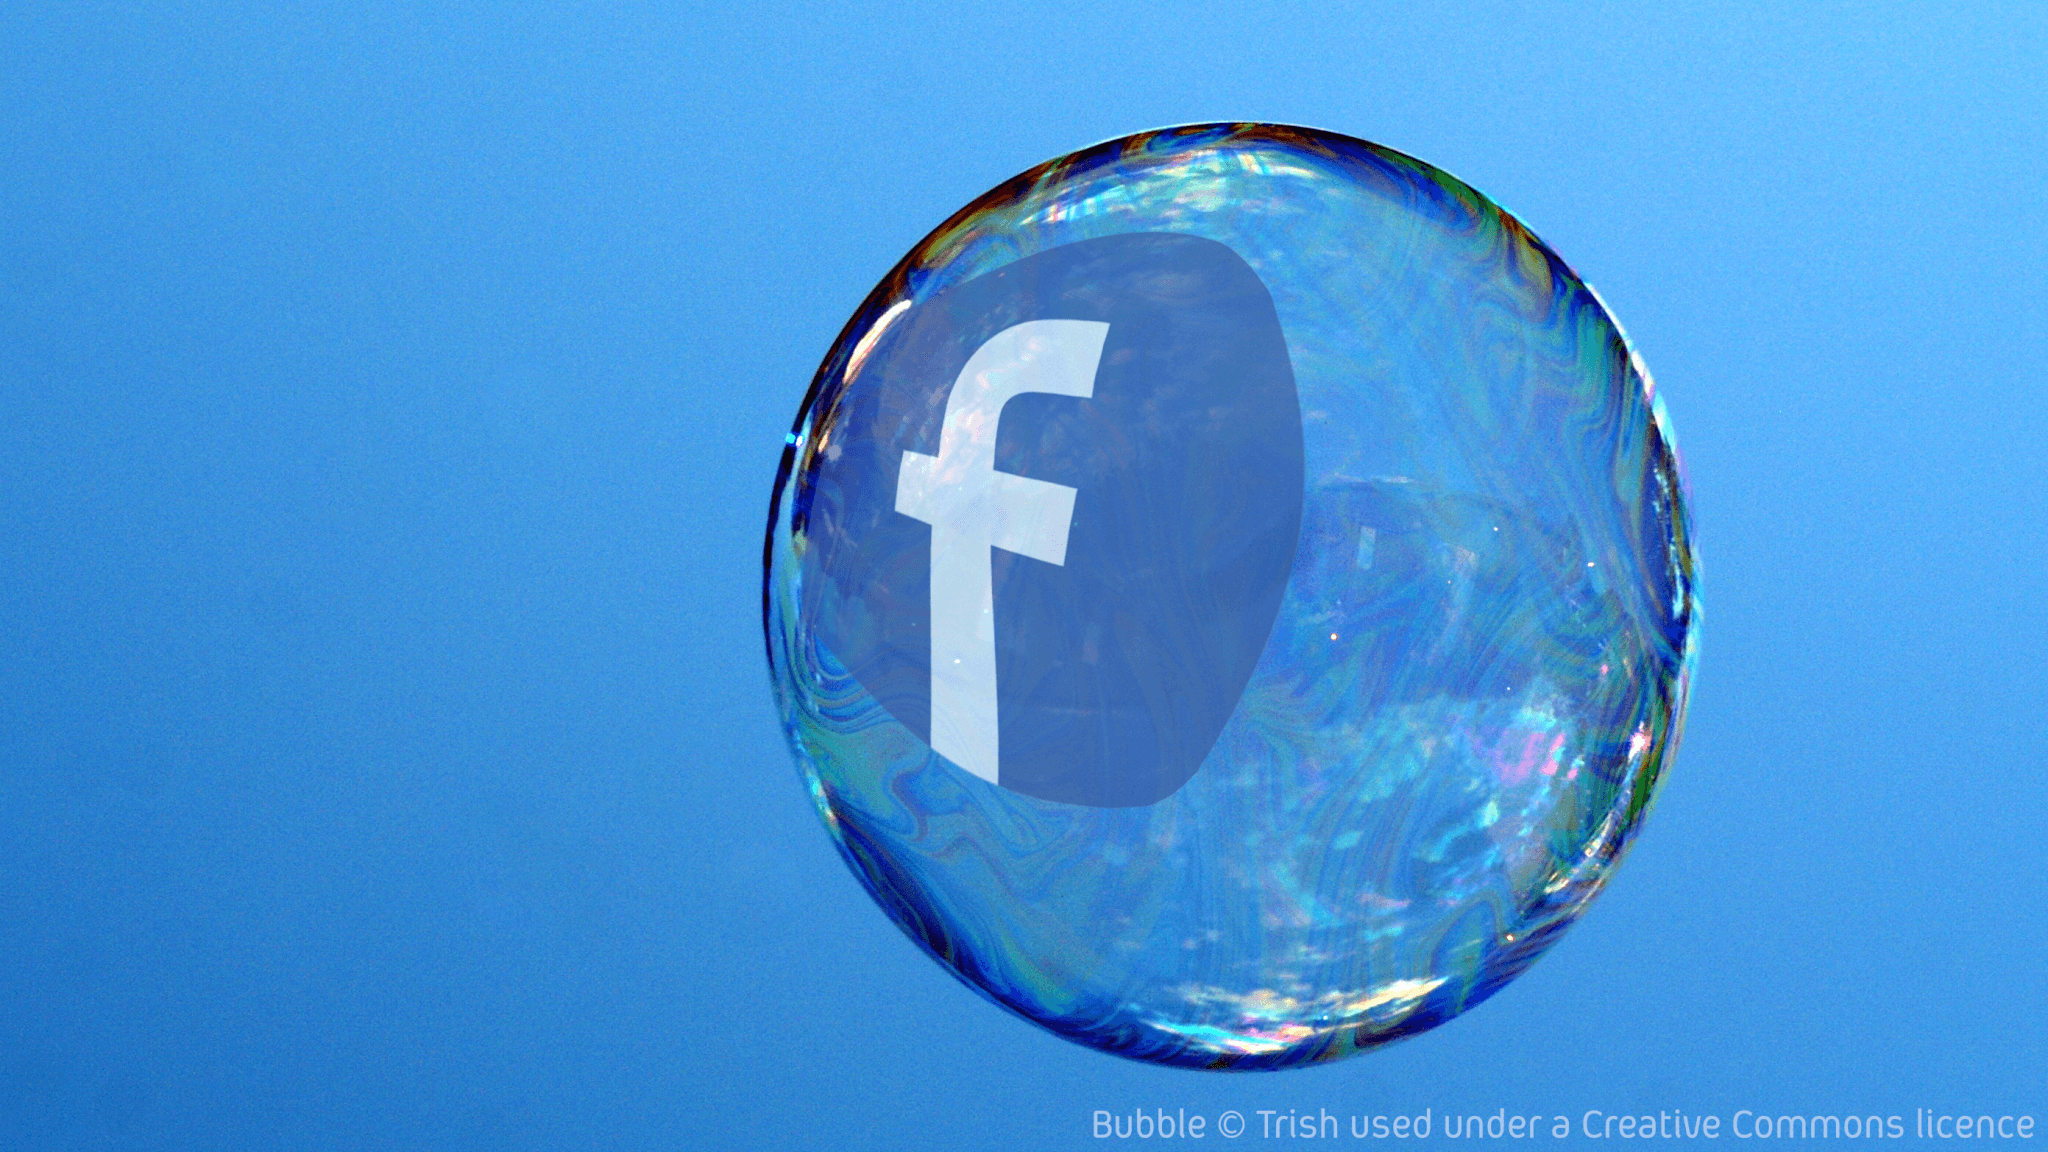 Facebook filter bubble. Original bubble © Trish, used under . Creative Commons by-cc-by-nc-sa-2-0 licence. Facebook logo added by Tony Watkins. May be reshared under a CC-BY-NC-SA-2.0 licence.